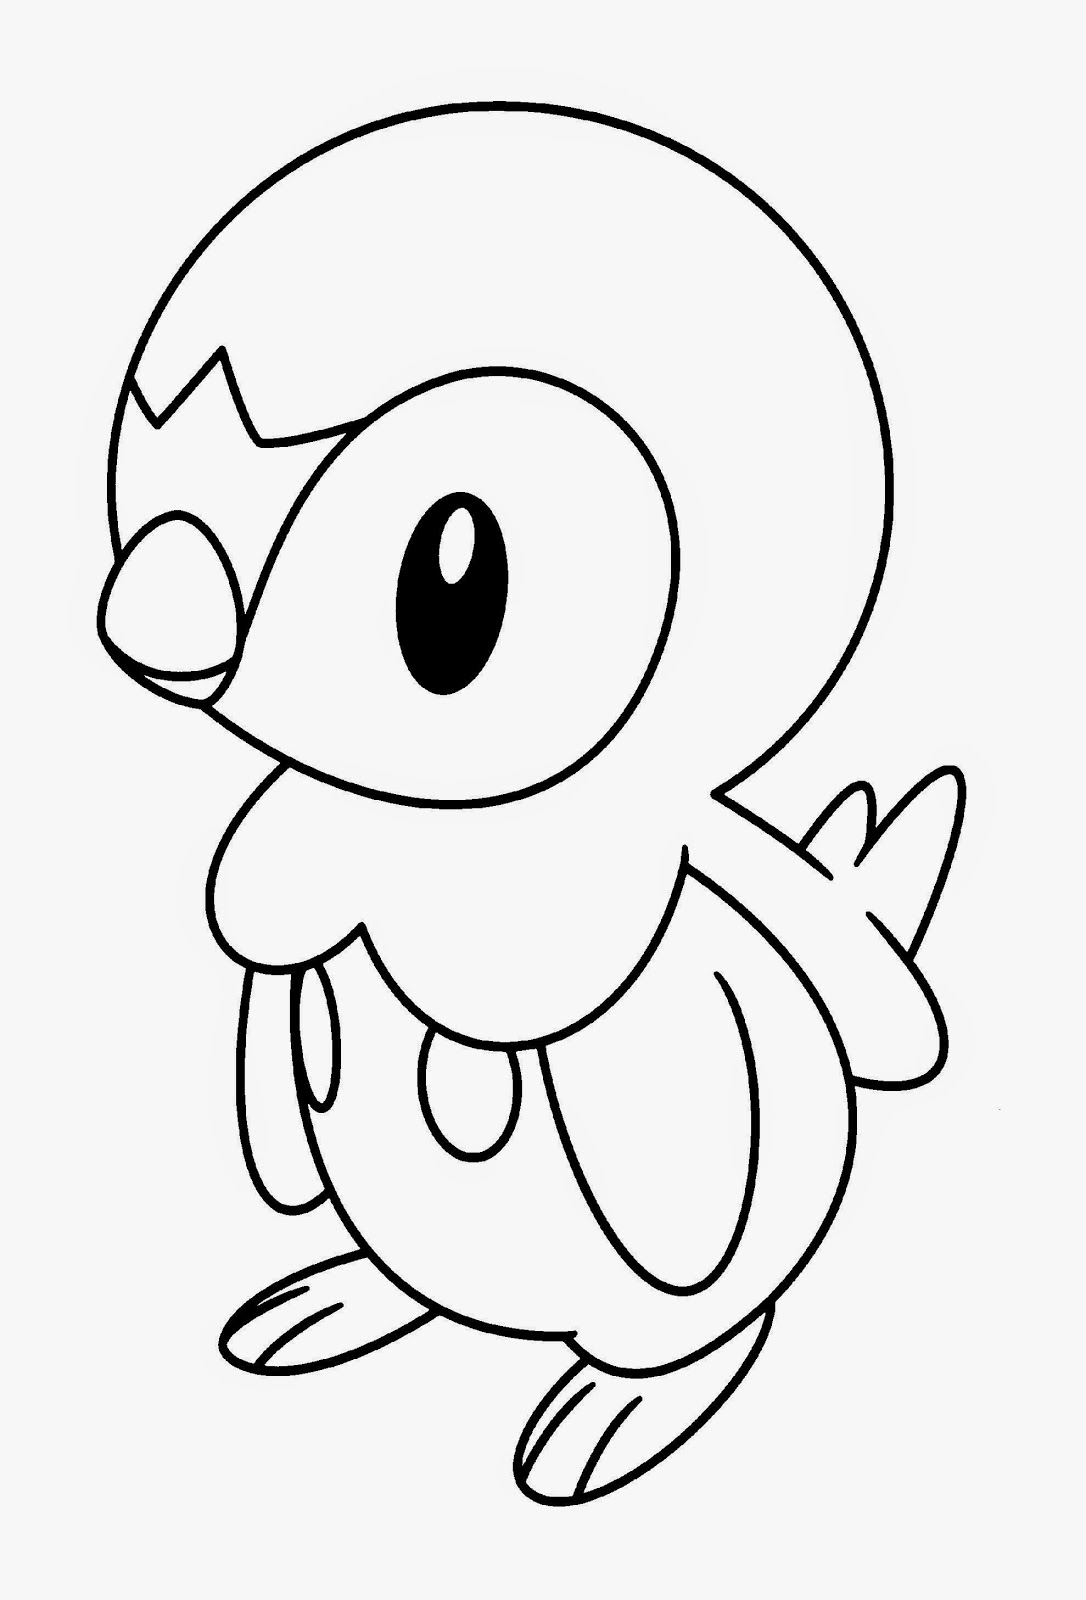 Pokemon coloring pages free coloring sheet for Pokemon online coloring pages